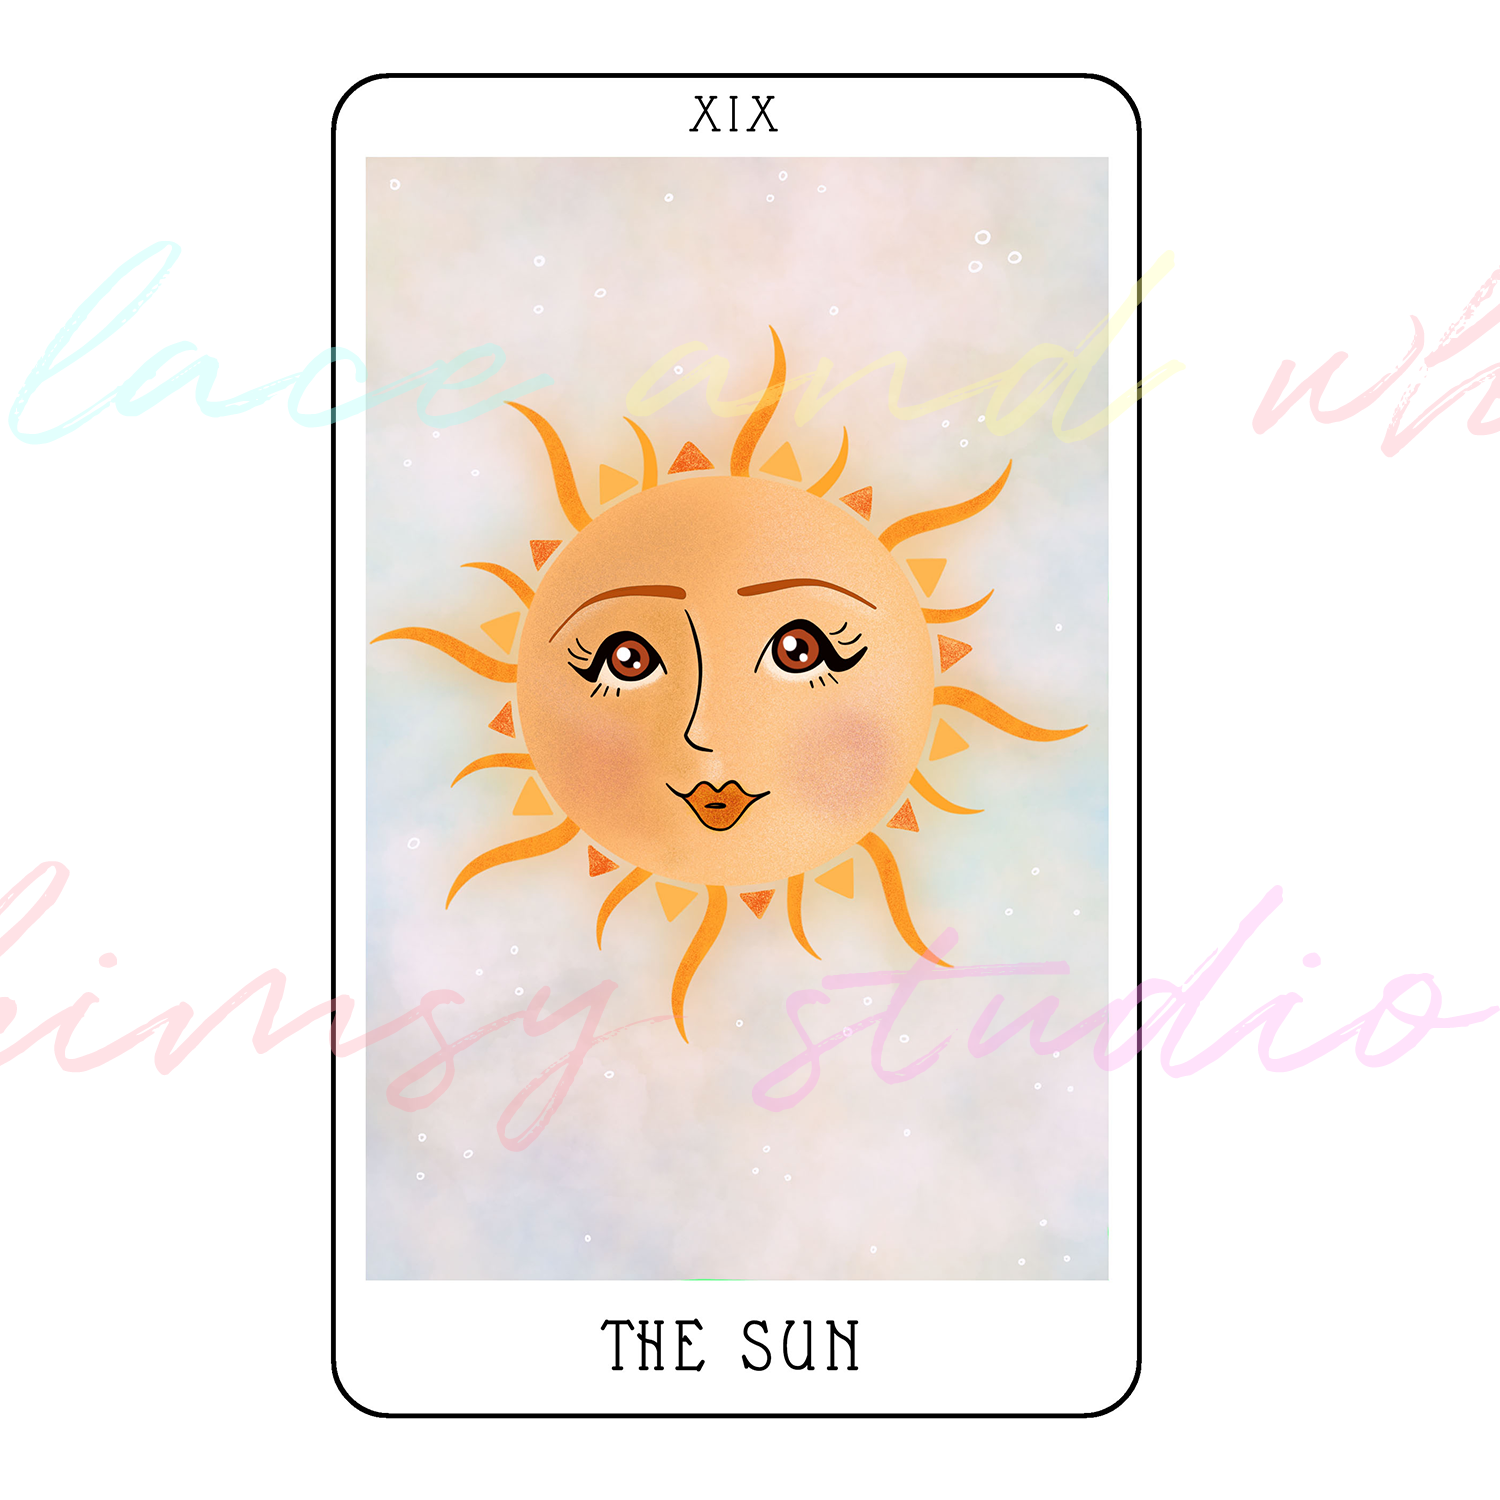 tarot-cards-illustration-series-2018-laceandwhimsy-kathy-d-clark-The-Sun.png